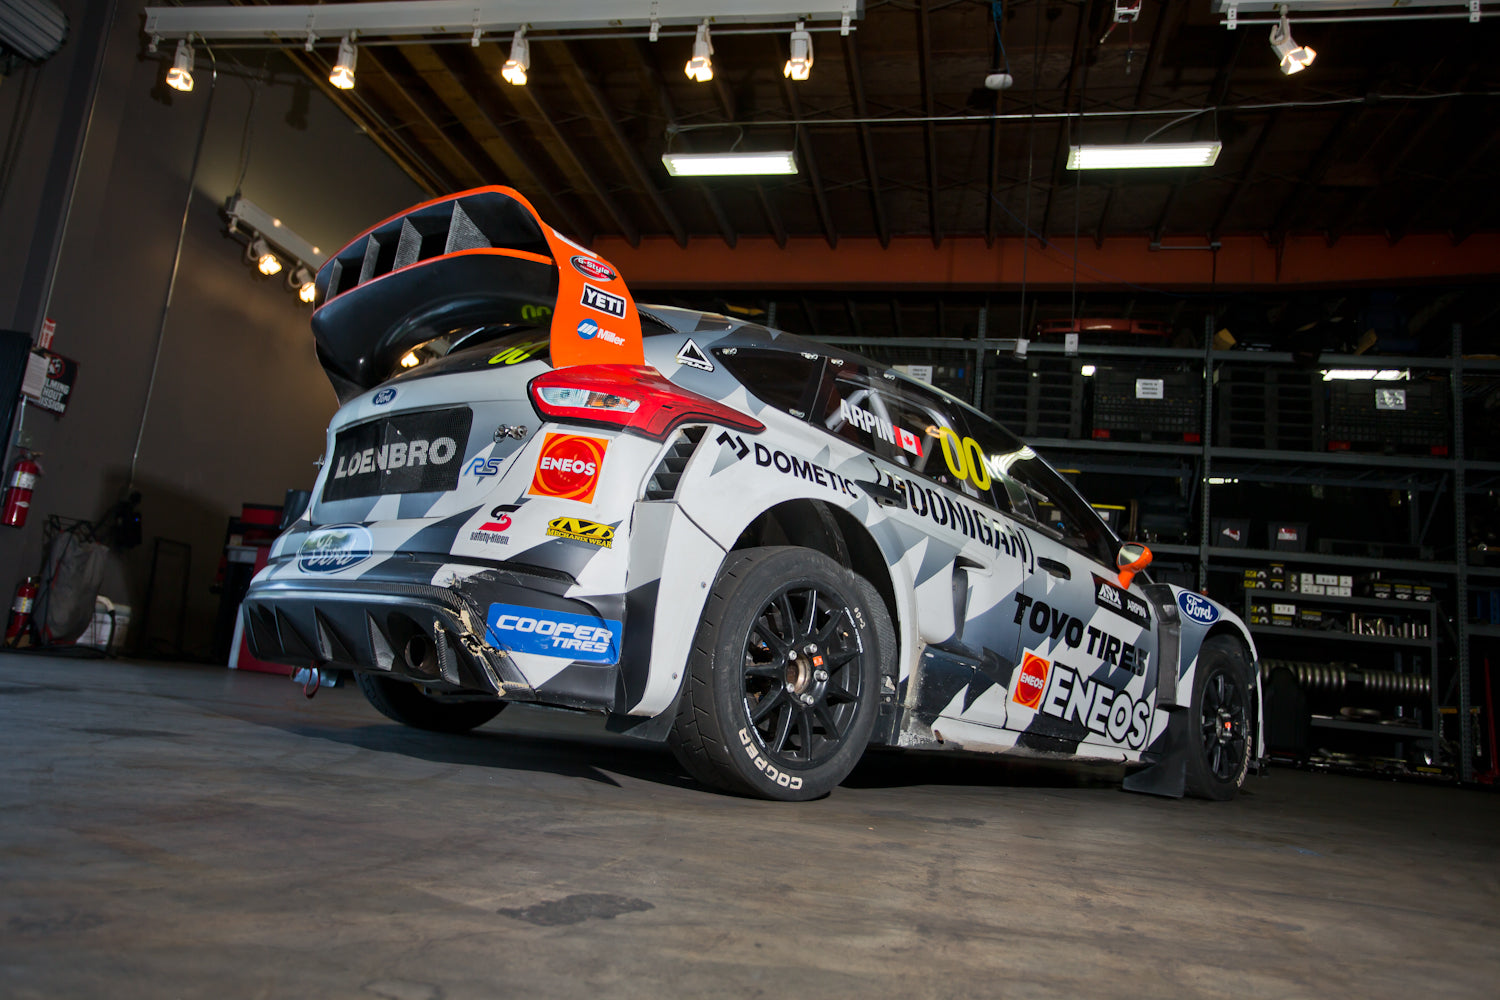 Ford Focus Awd >> 0 60mph In Under 2 Seconds Under The Hood Of The 600hp Awd Ford Focus Rs Rx Rallycross Car